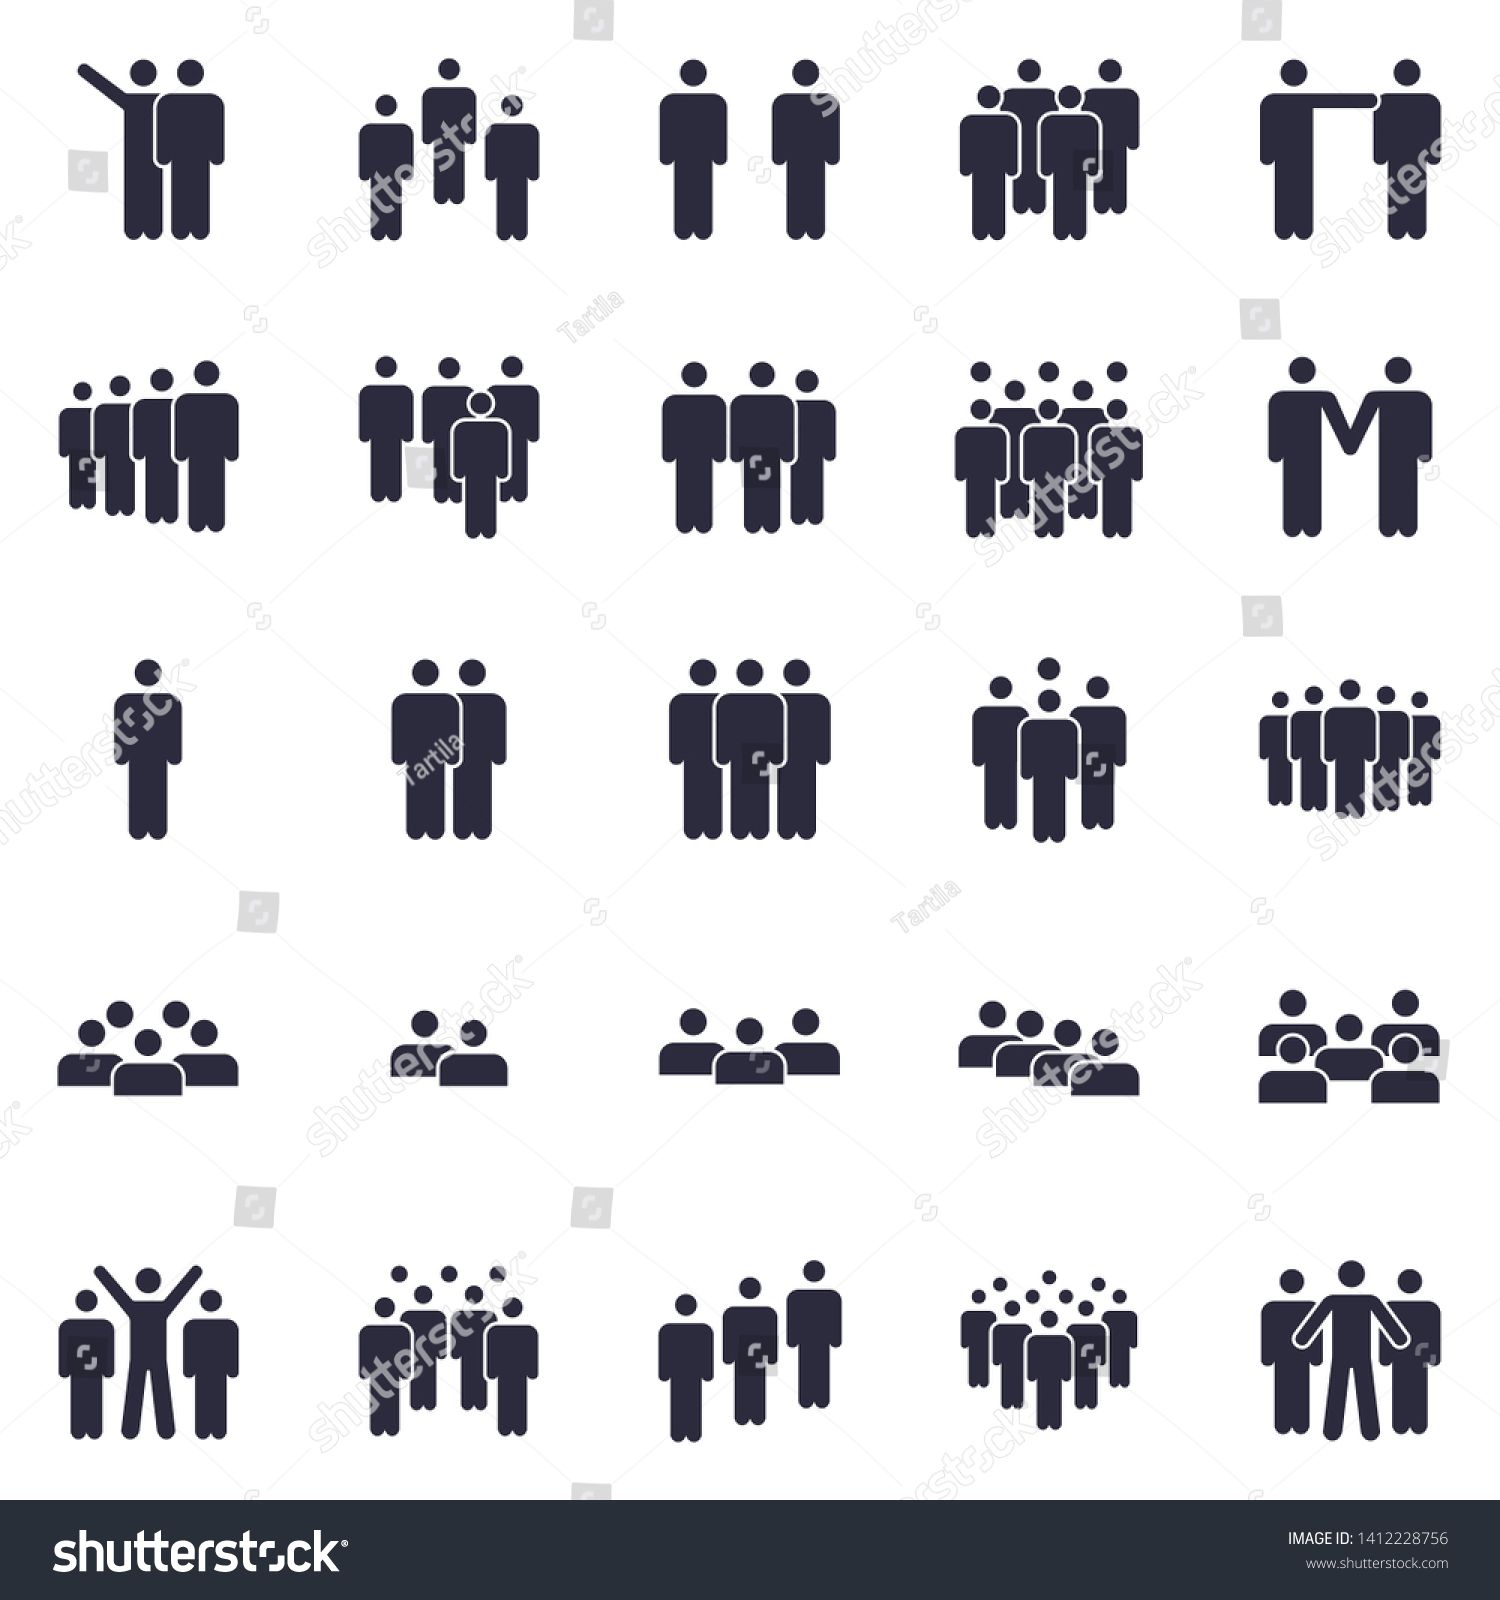 Groups Of Persons Icon Business Team Person Office Teamwork People Symbol And Work Group Persons Crowd Human Member Fig In 2020 Person Icon Icon Stock Illustration